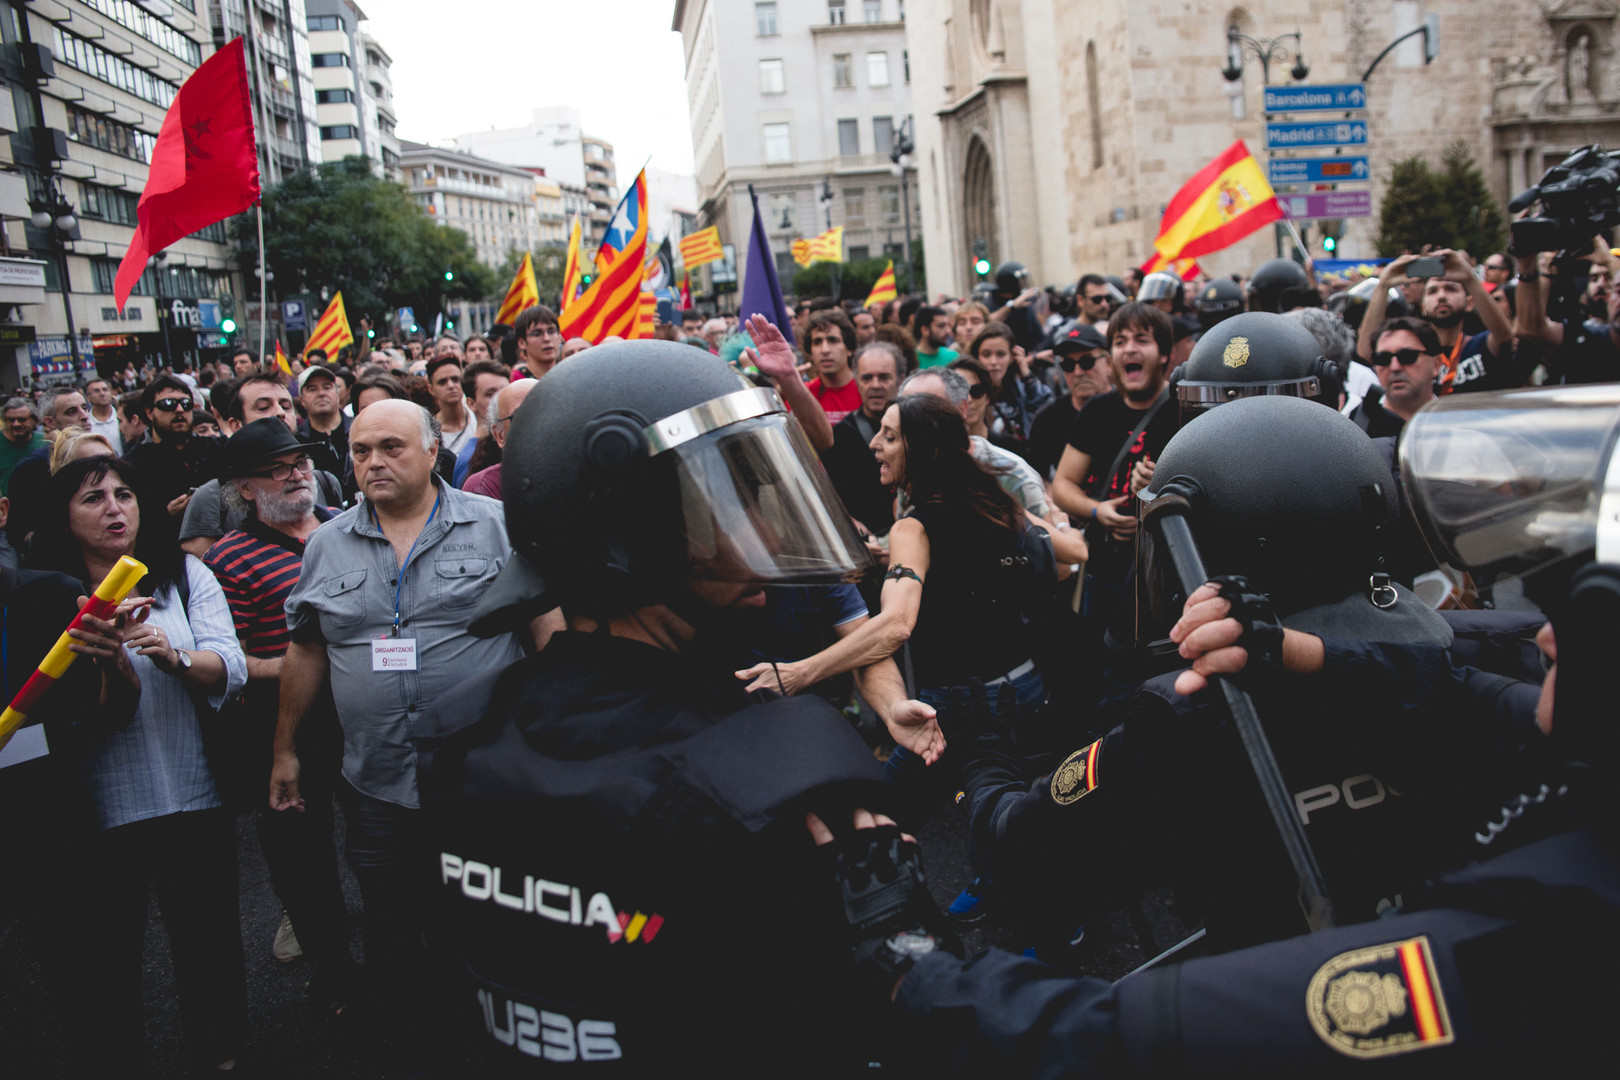 Police officers are beating some people demonstrating against the indipendence of Catalunya. Valencia, October 9th, 2017